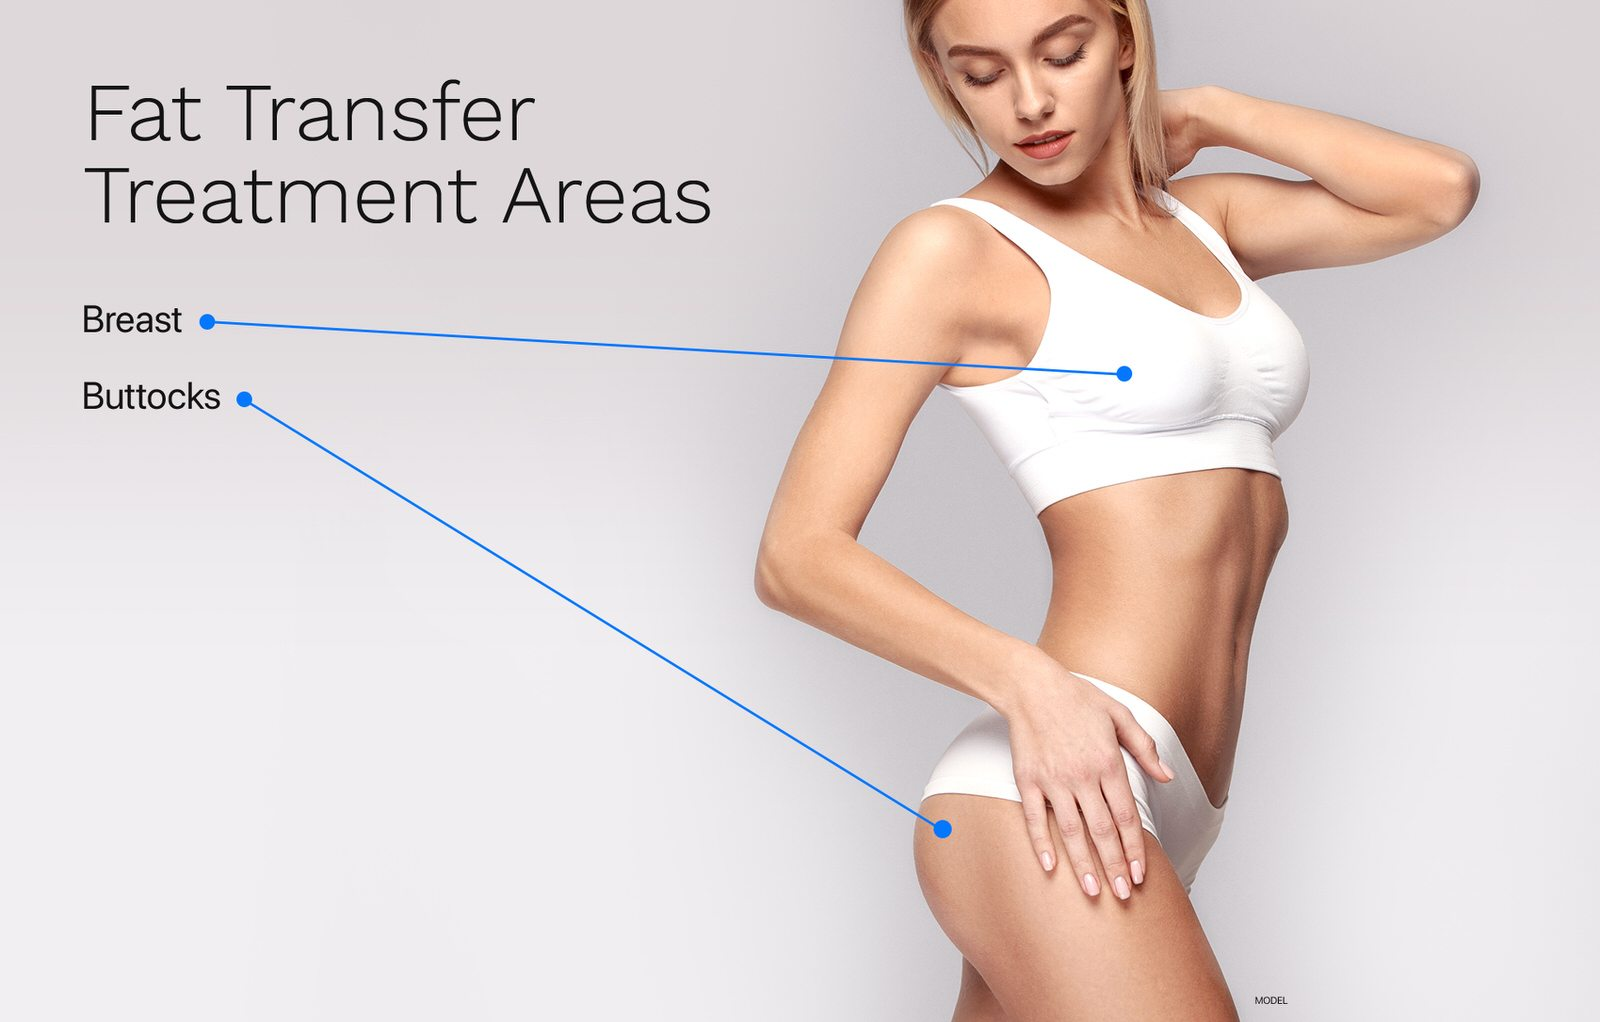 Fat transfer treatment areas for the breasts and buttocks